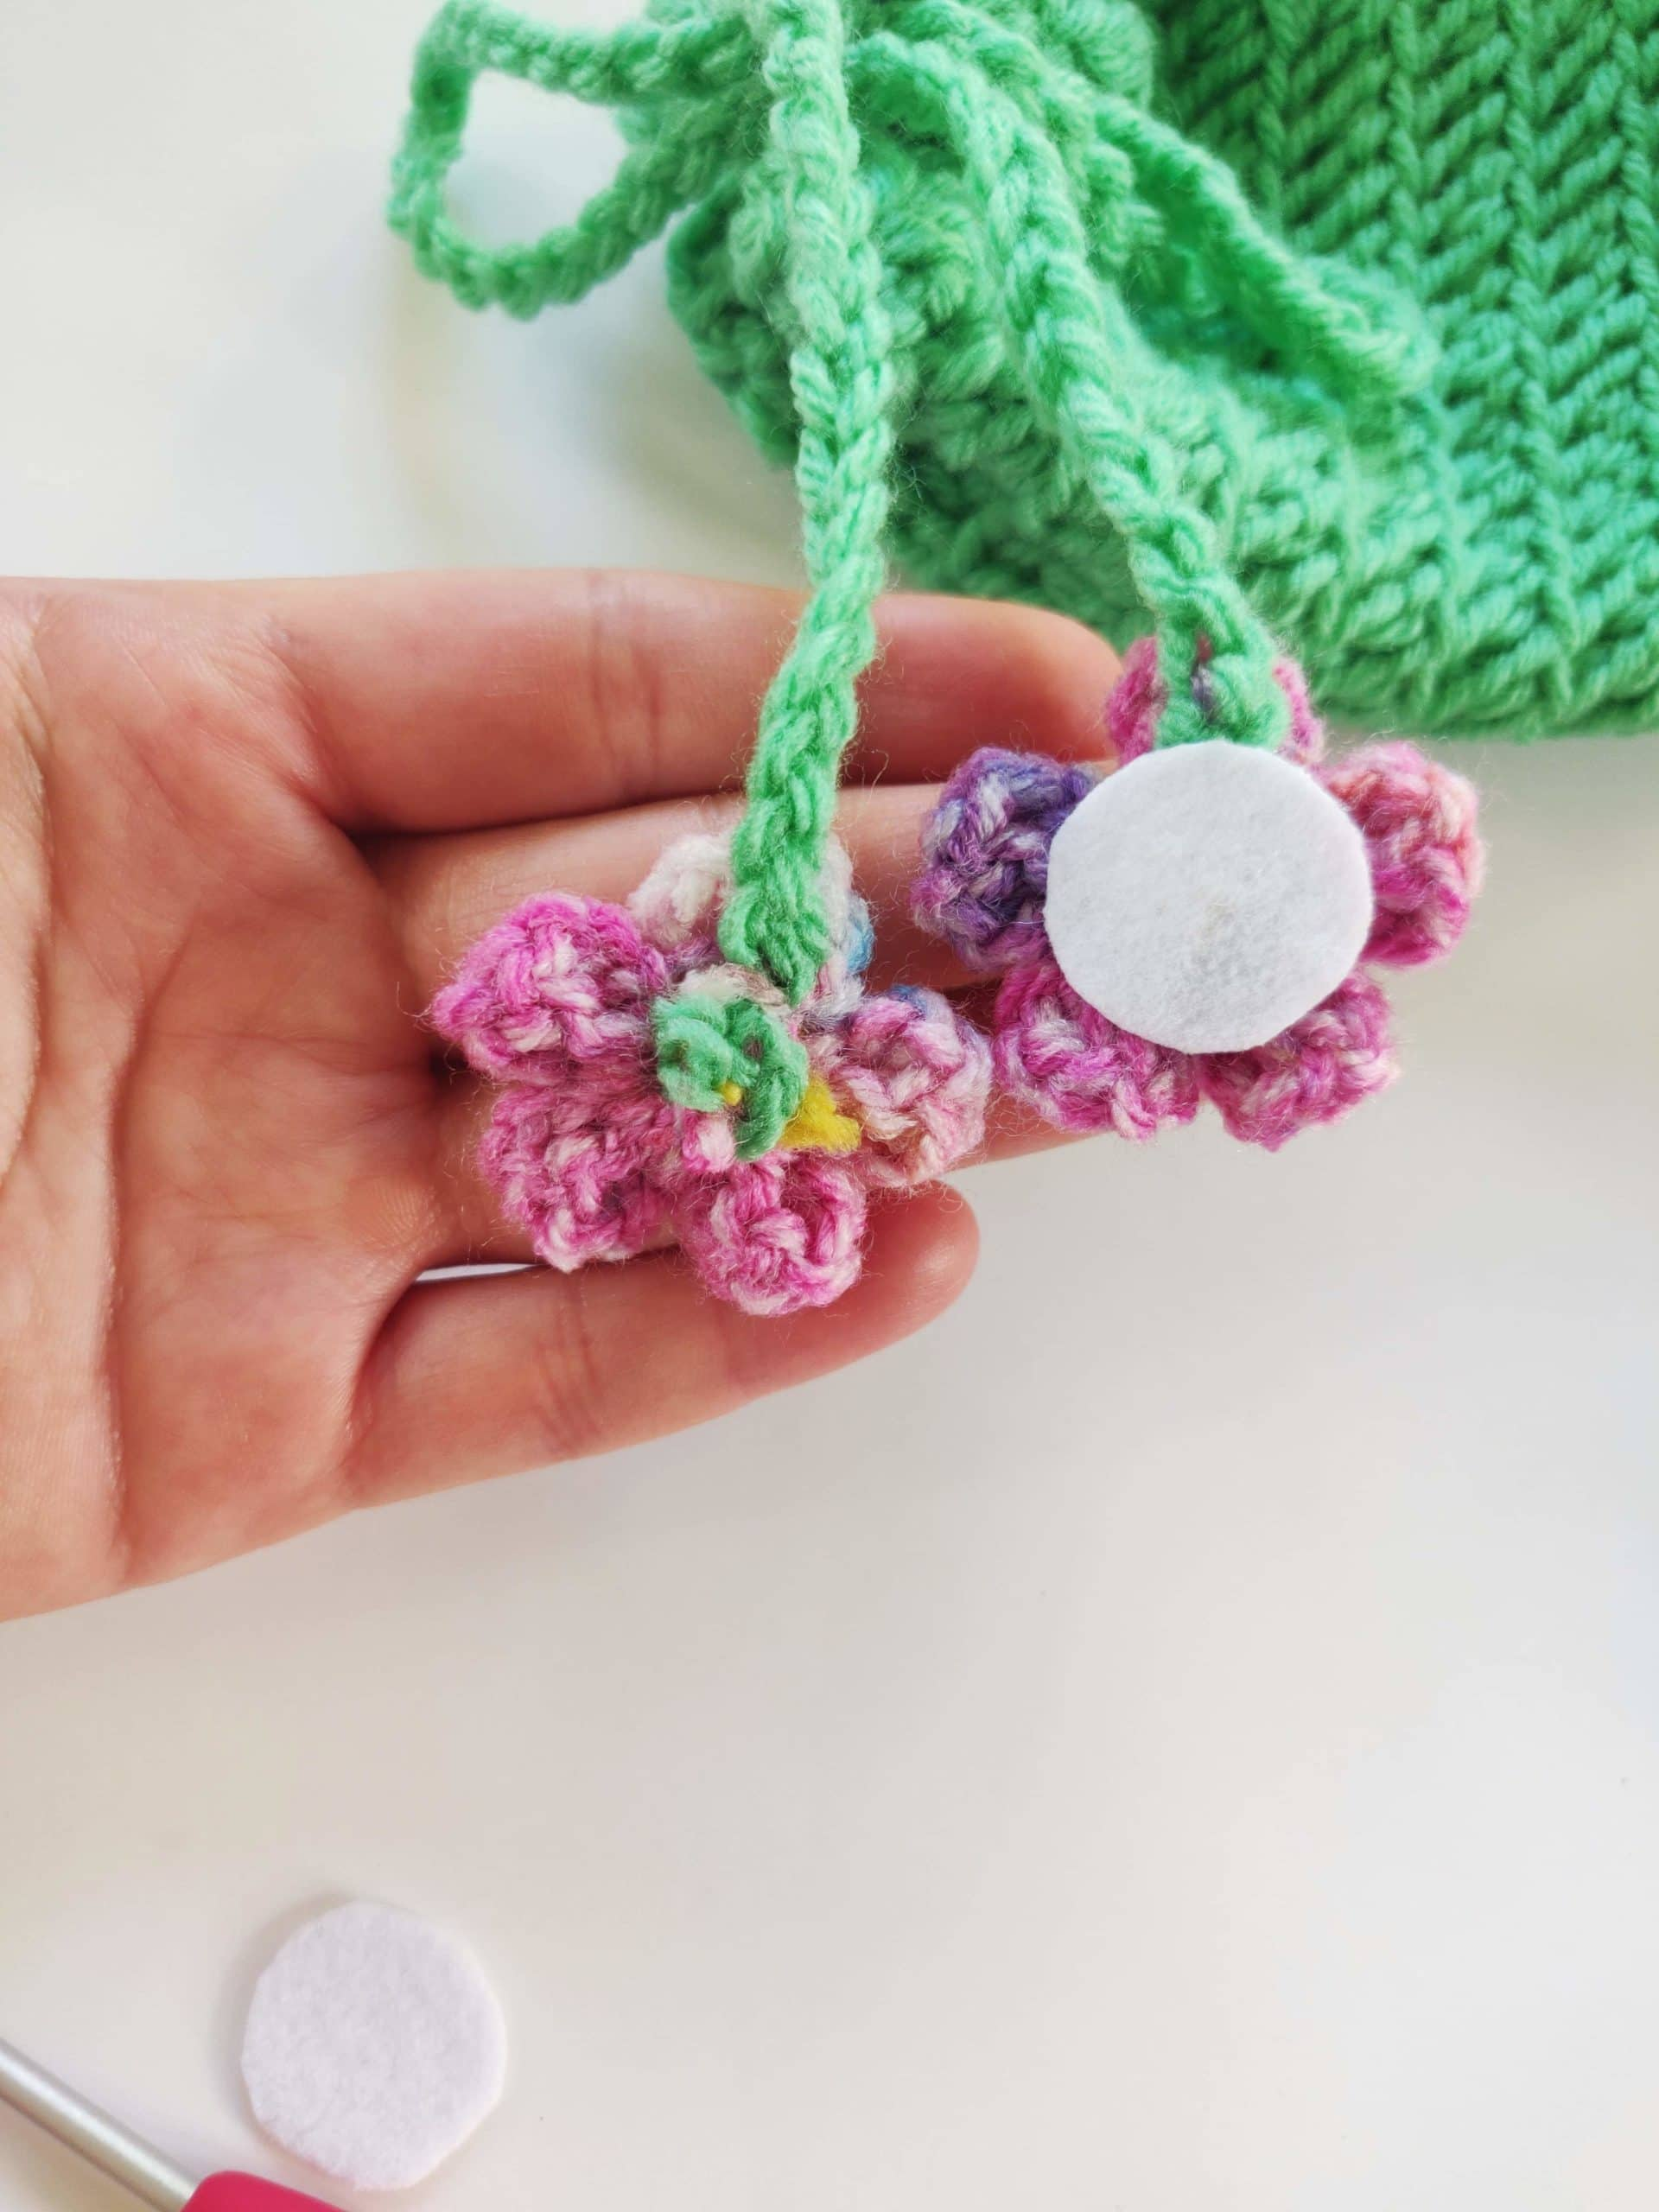 Crochet flower with piece of white felt in the back.